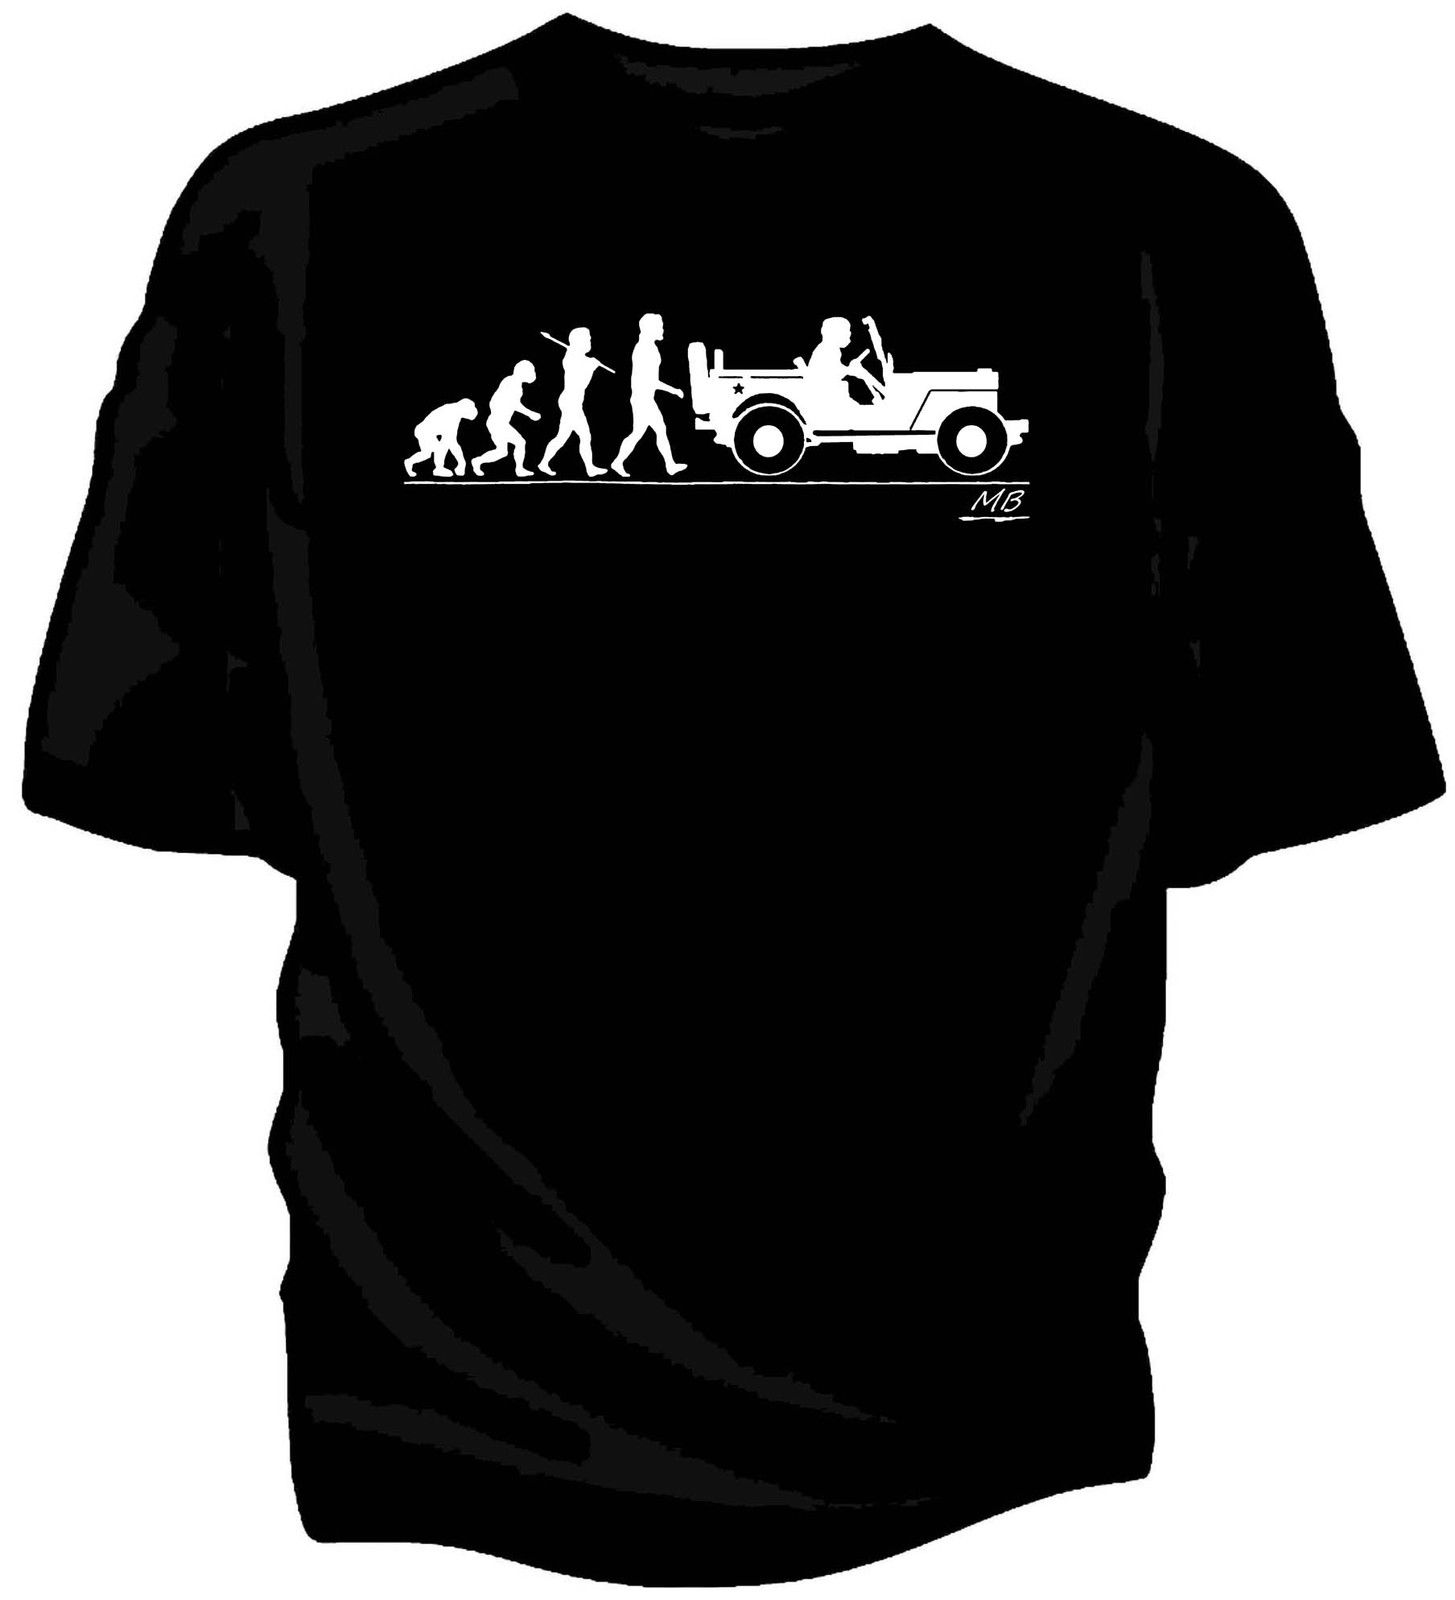 Evolution of Man Willys MB Jeep t-shirt